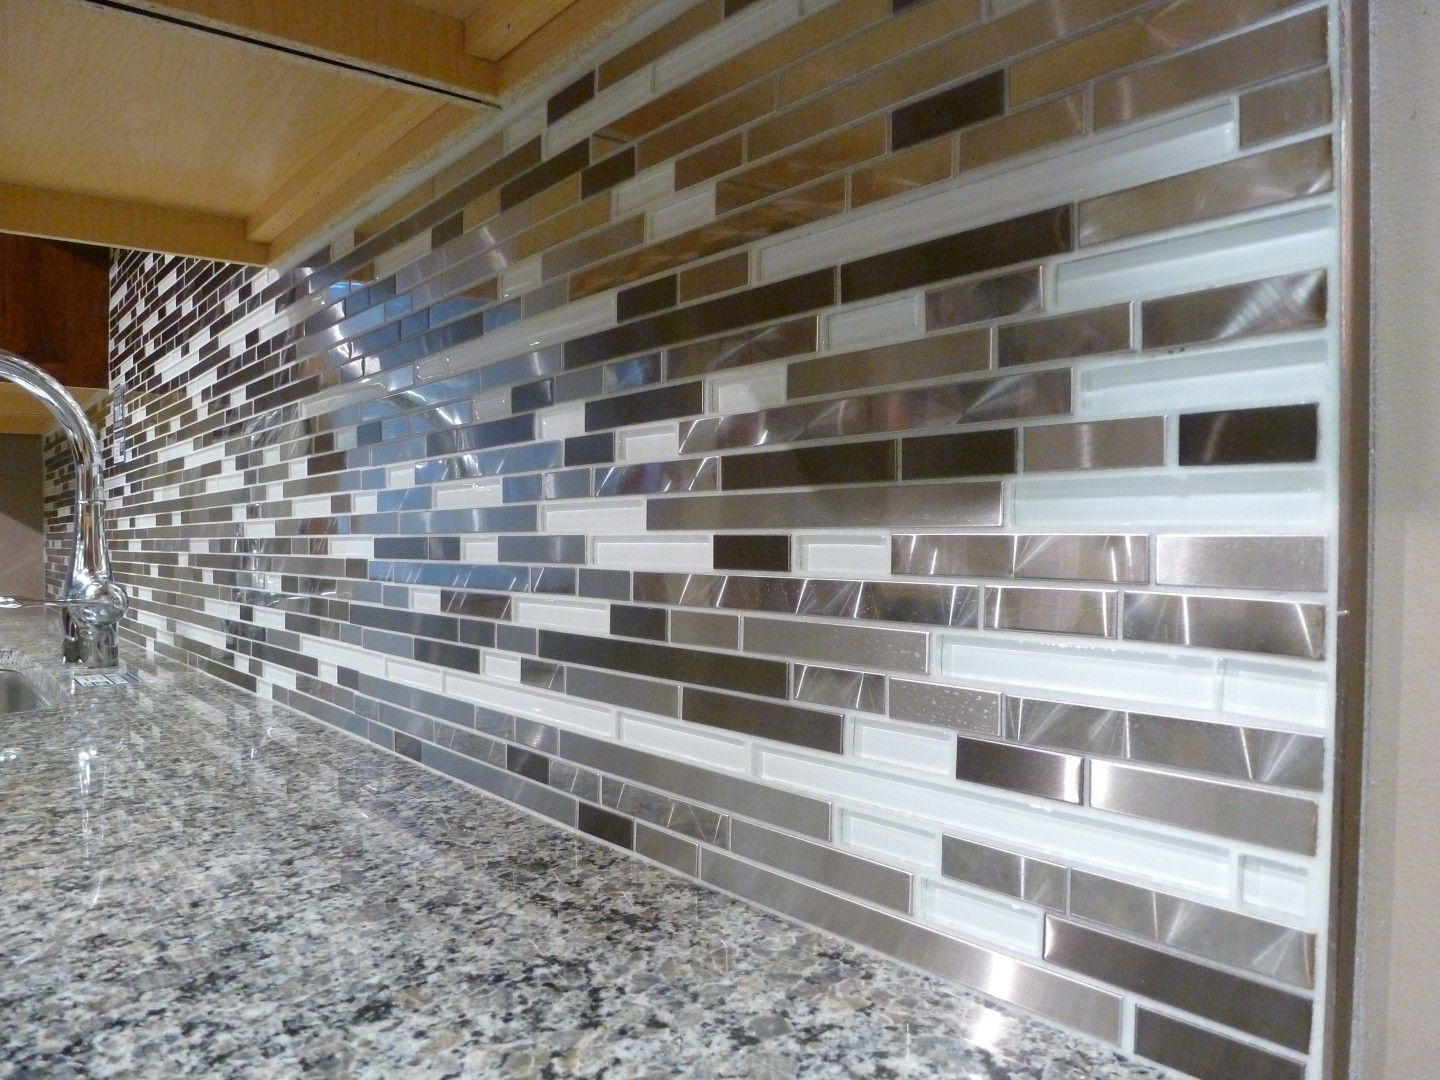 Install mosaic tile backsplash mosaics curved all sides fit step install mosaic tile backsplash mosaics curved all sides fit step with countertop dailygadgetfo Images